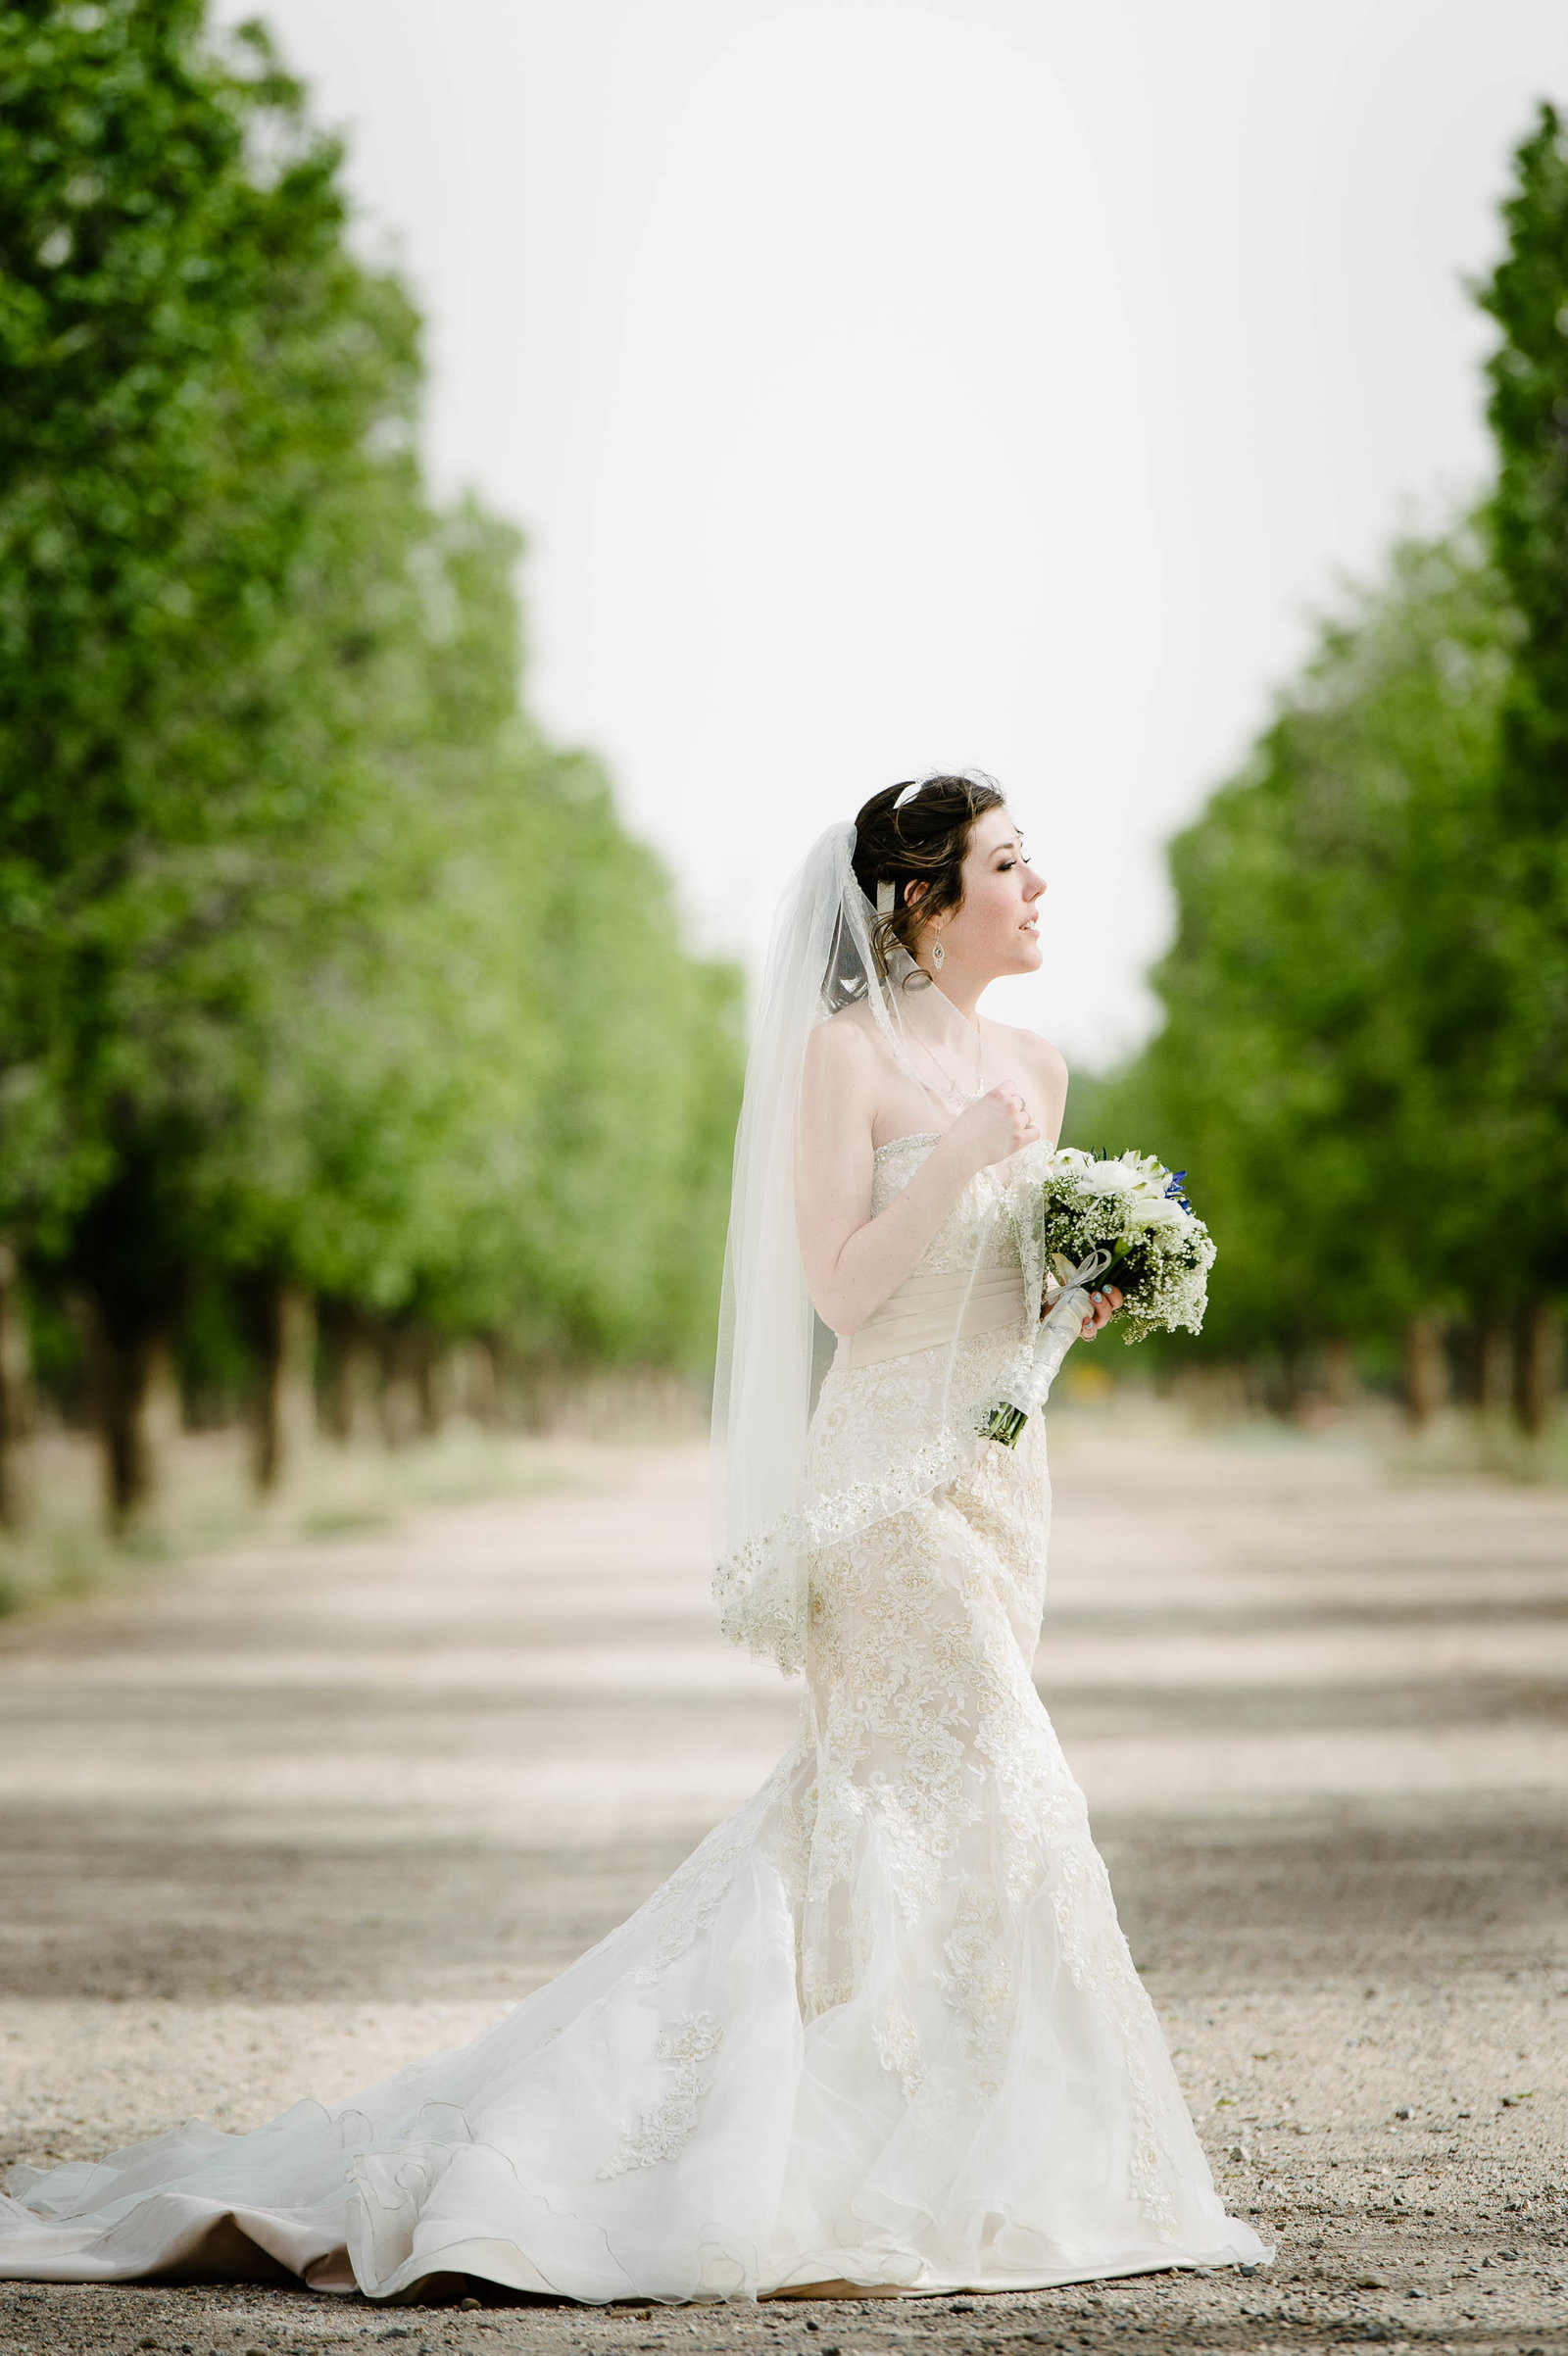 290-El-paso-wedding-photographer-El Paso Wedding Photographer_B03